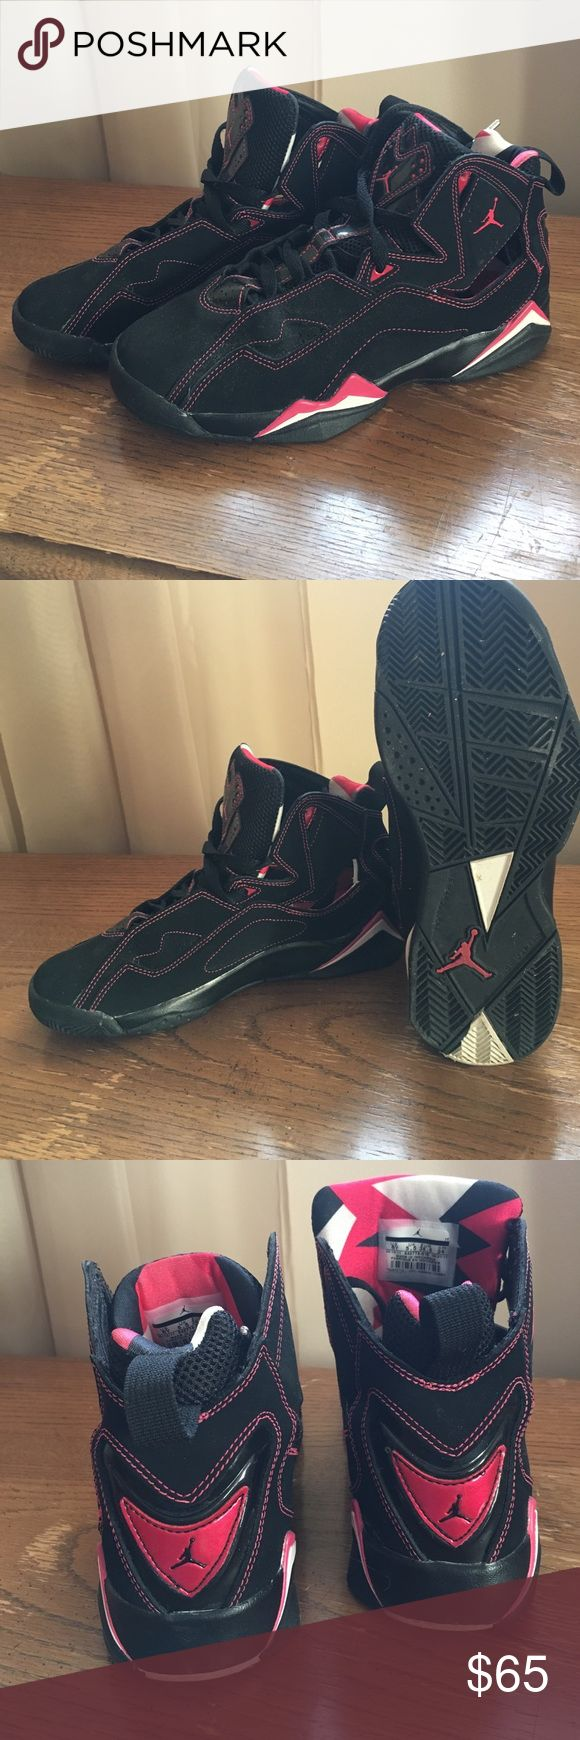 Grade School Kids Jordan's They are in mint condition. Only worn a handful of times. They are a youth (grade school) size 6. PayPal preferred. Jordan Shoes Sneakers